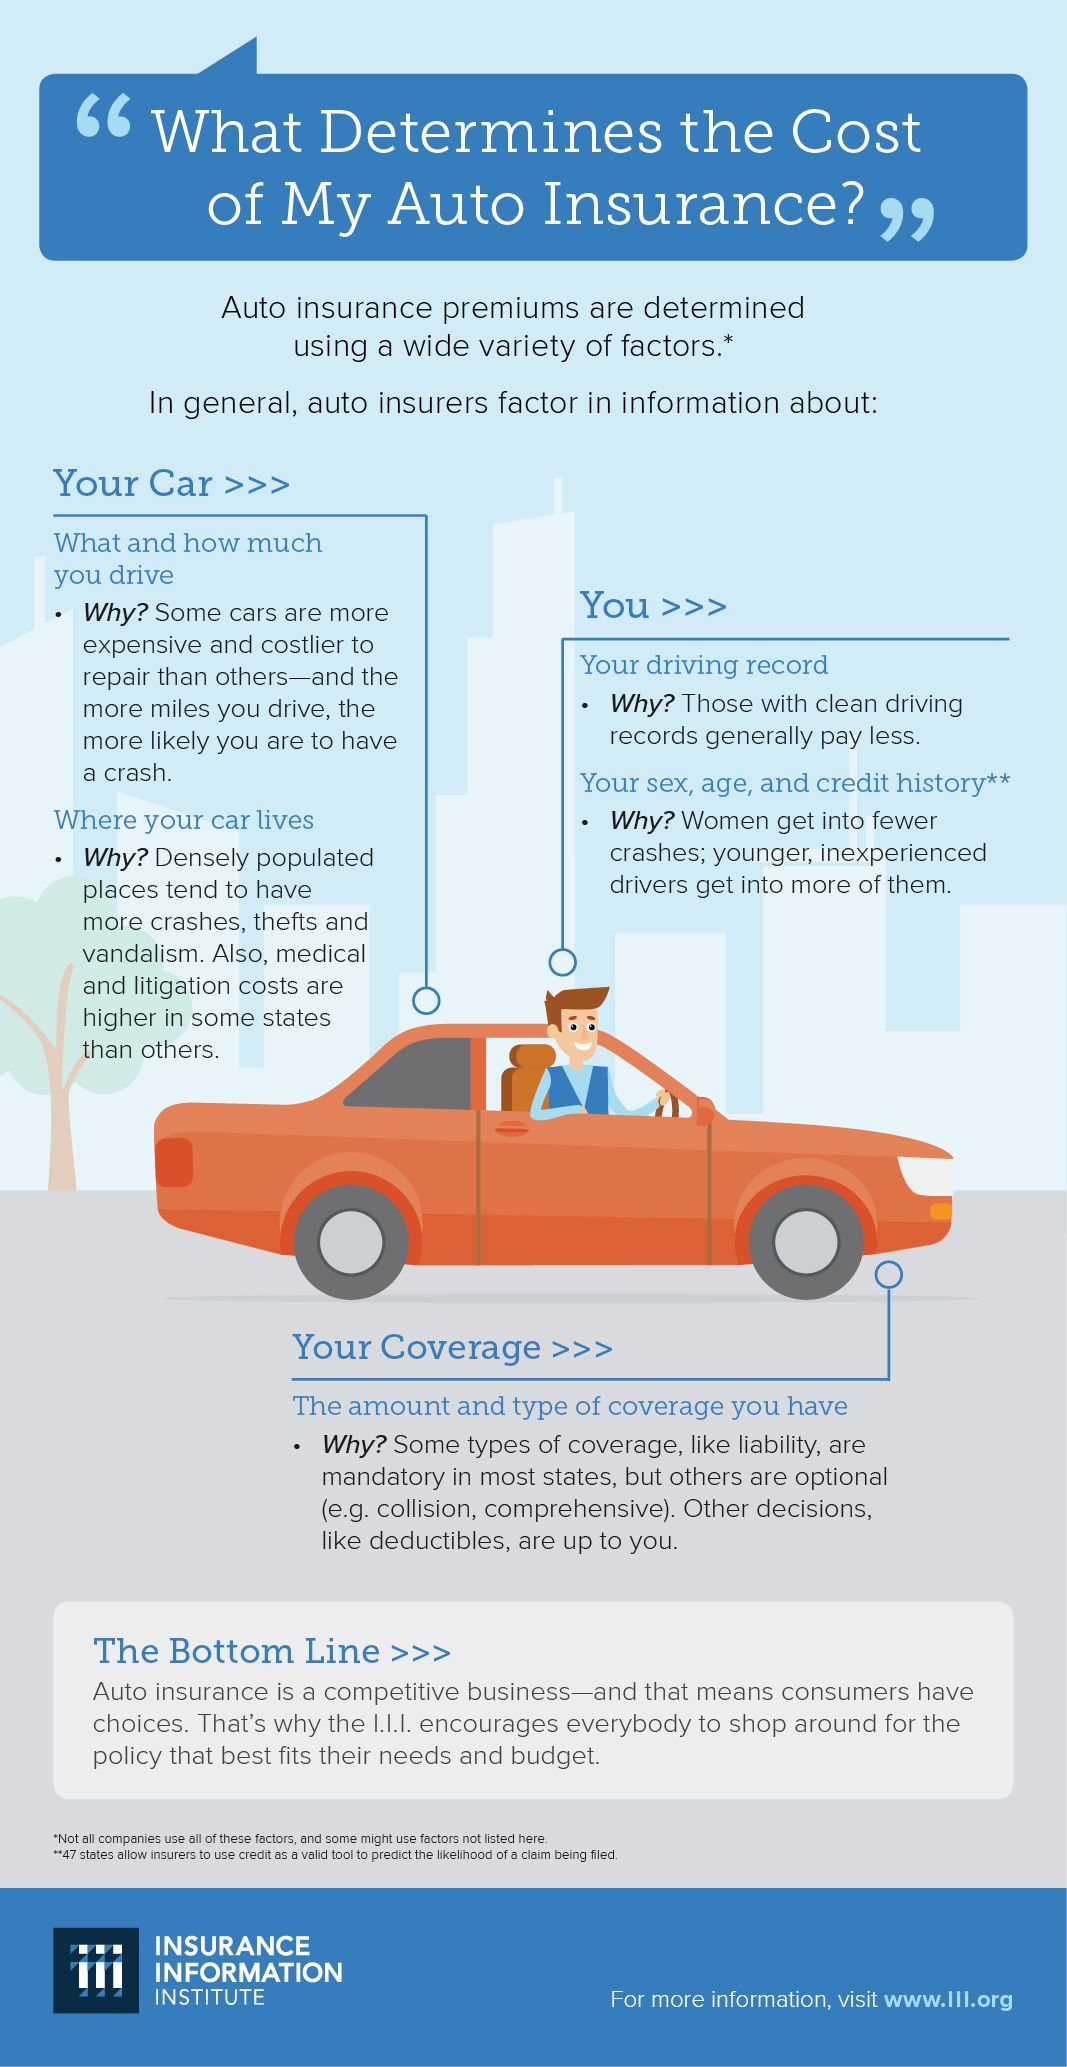 What Determines The Cost of Your Auto Insurance? Car